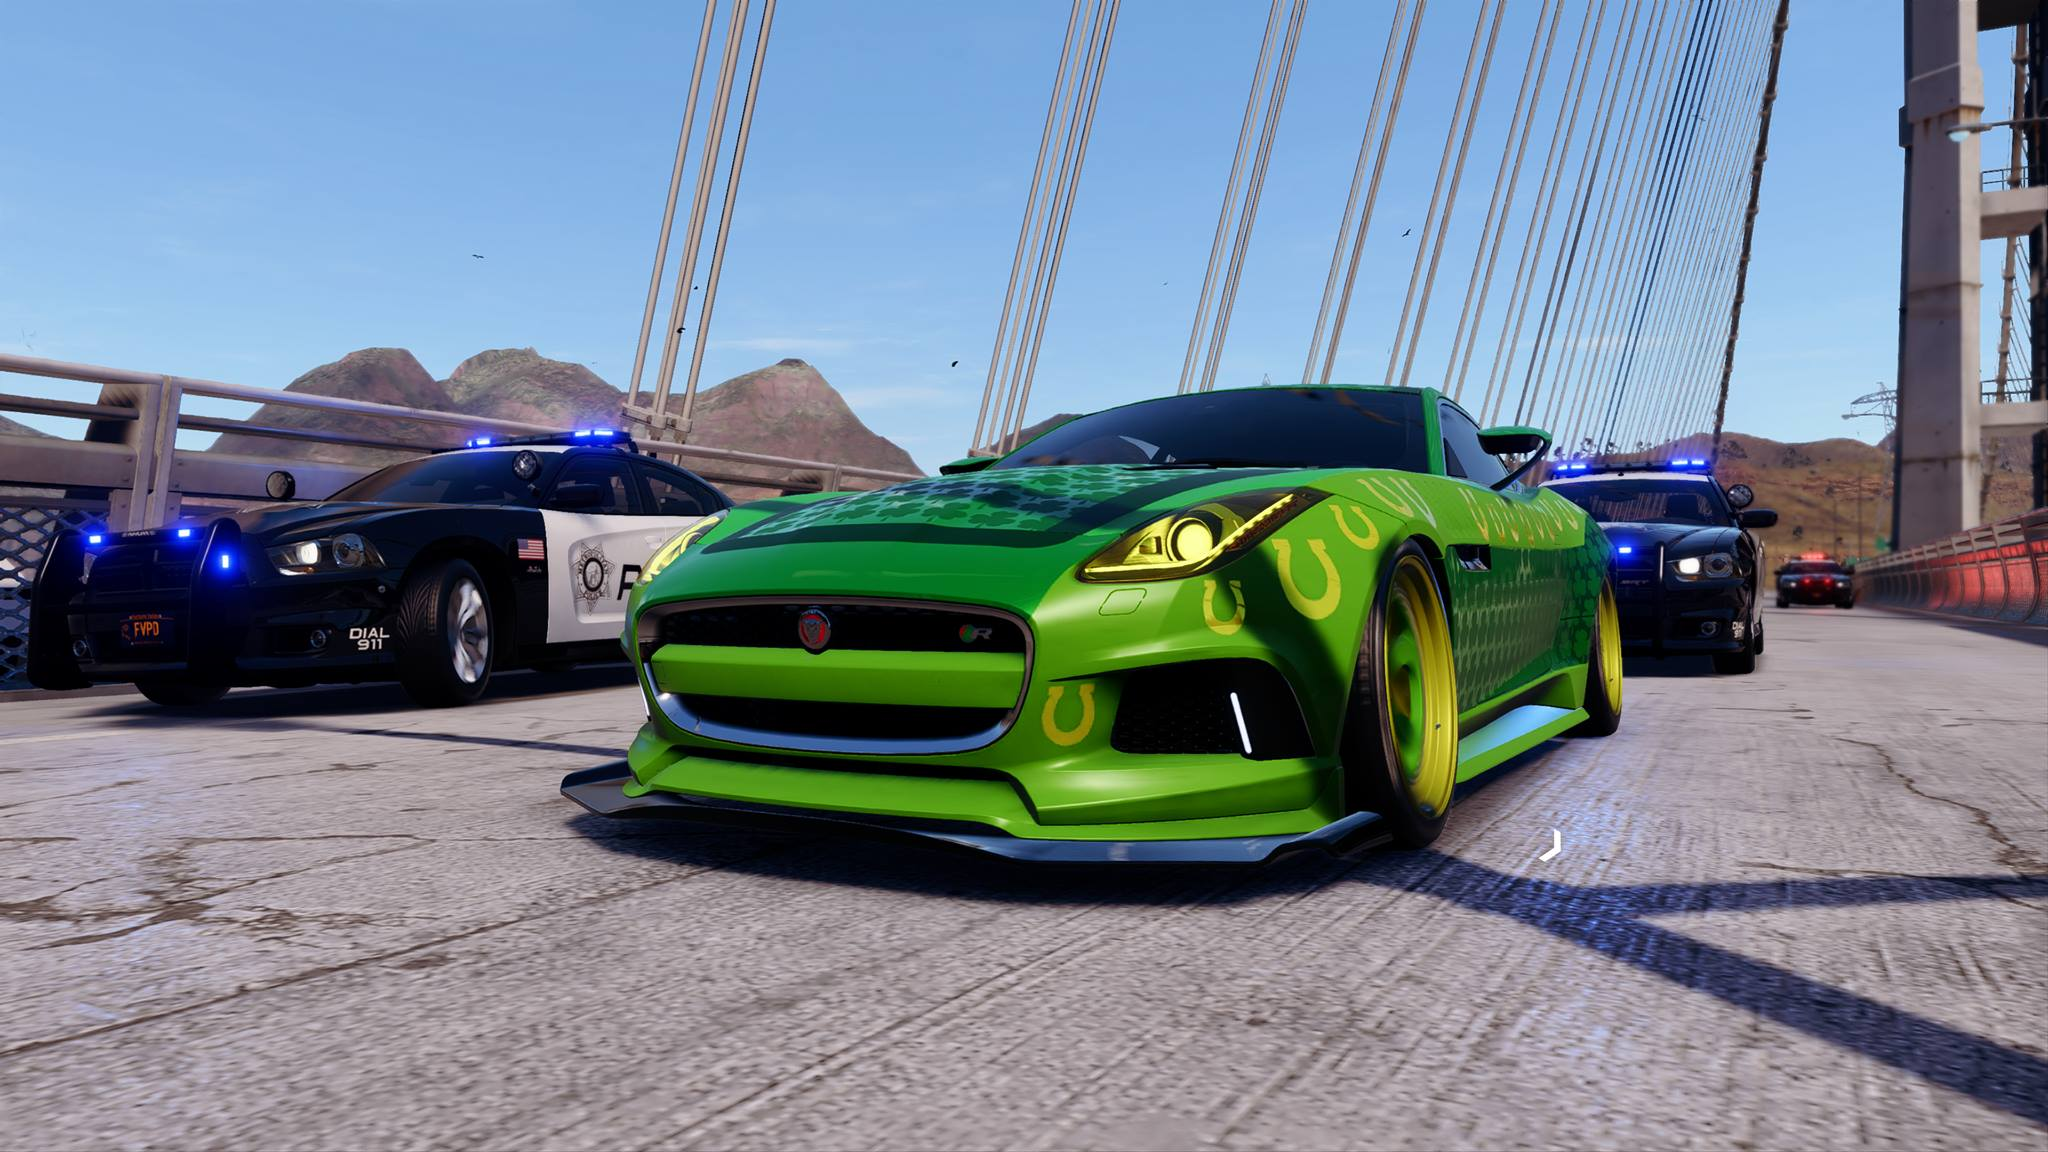 Need For Speed Payback Abandoned Cars Location Guide Jaguar F Type St Patricks Days Special The Nobeds